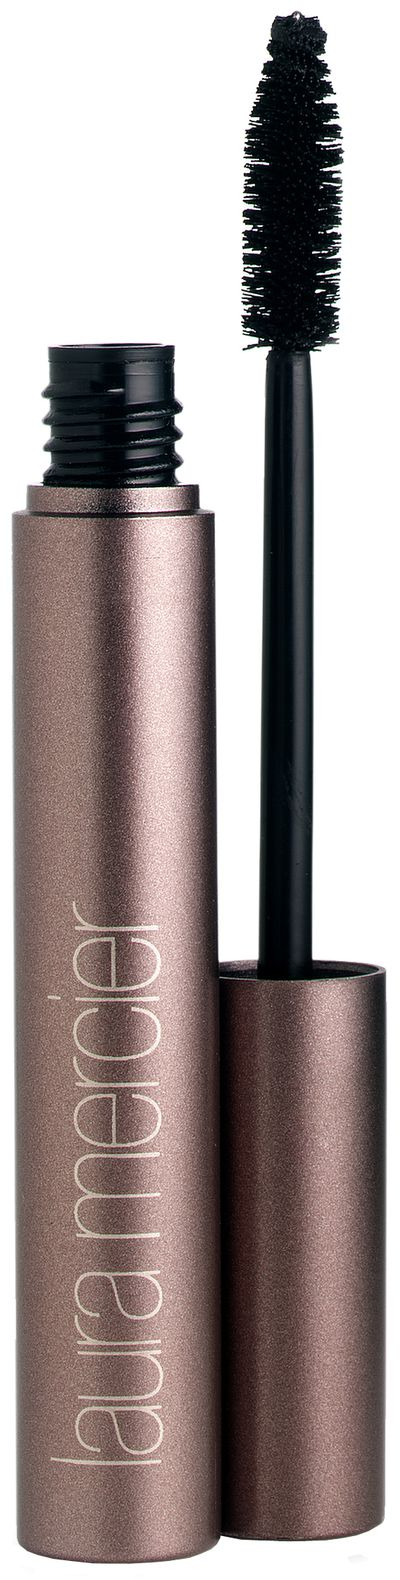 "<a href=""http://www.adorebeauty.com.au/laura-mercier.html"" target=""_blank"">Laura Mercier Waterproof Mascara, $29.99, lauramercier.com</a>"